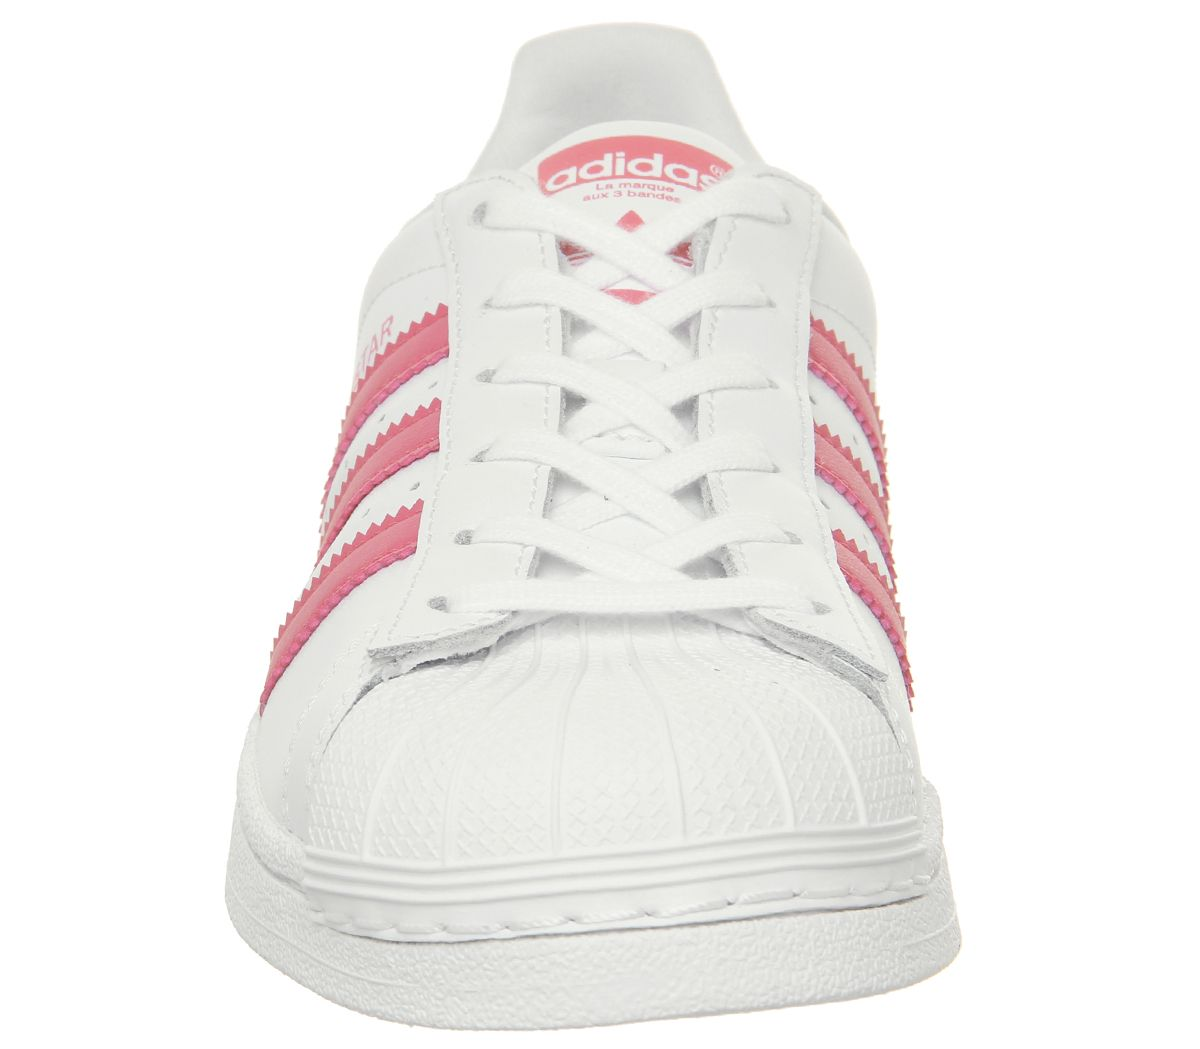 d92c556dbd18 SENTINELLE Womens Adidas Superstar Gs formateurs blanc chaussures  formateurs rose clair